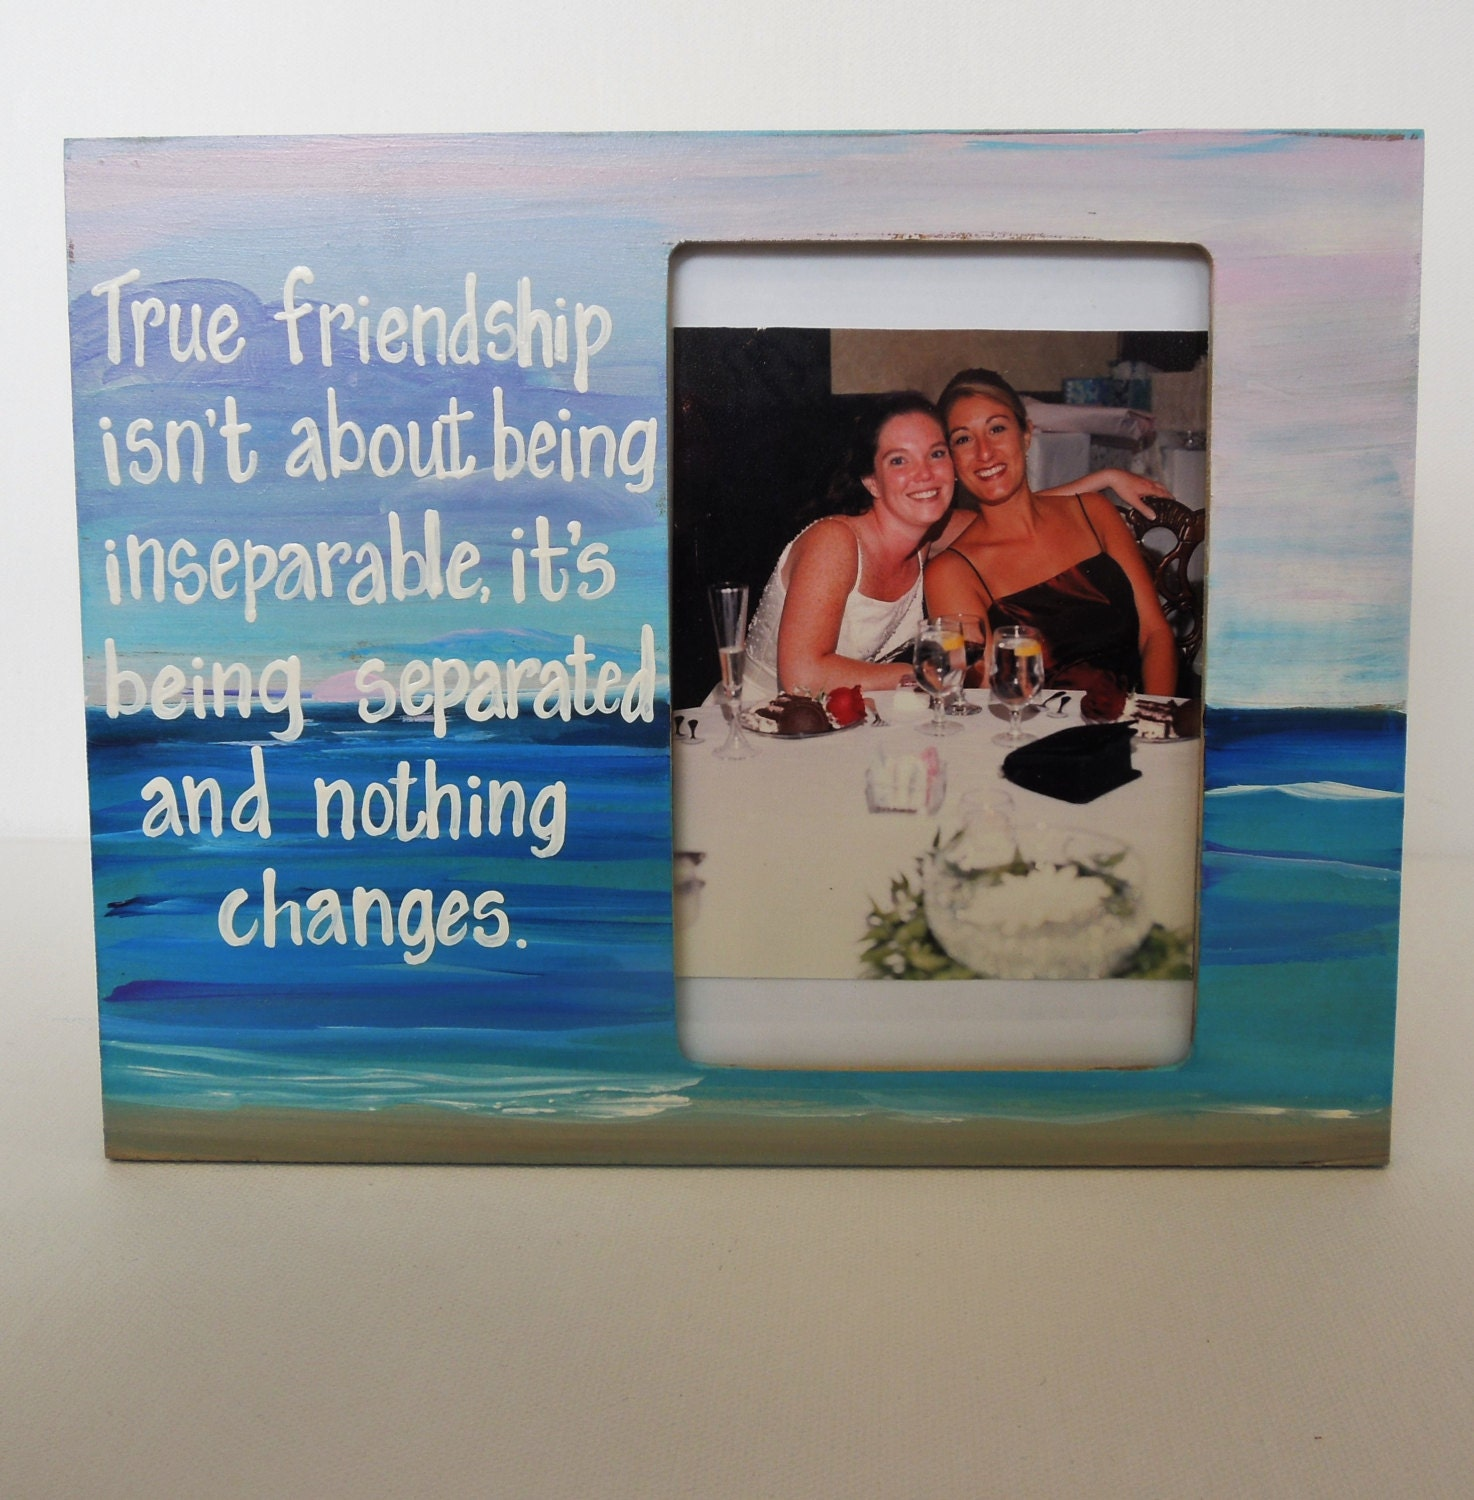 Friendship Picture Frames With Quotes: Best Friend Picture Frame, Long Distance Friend Picture